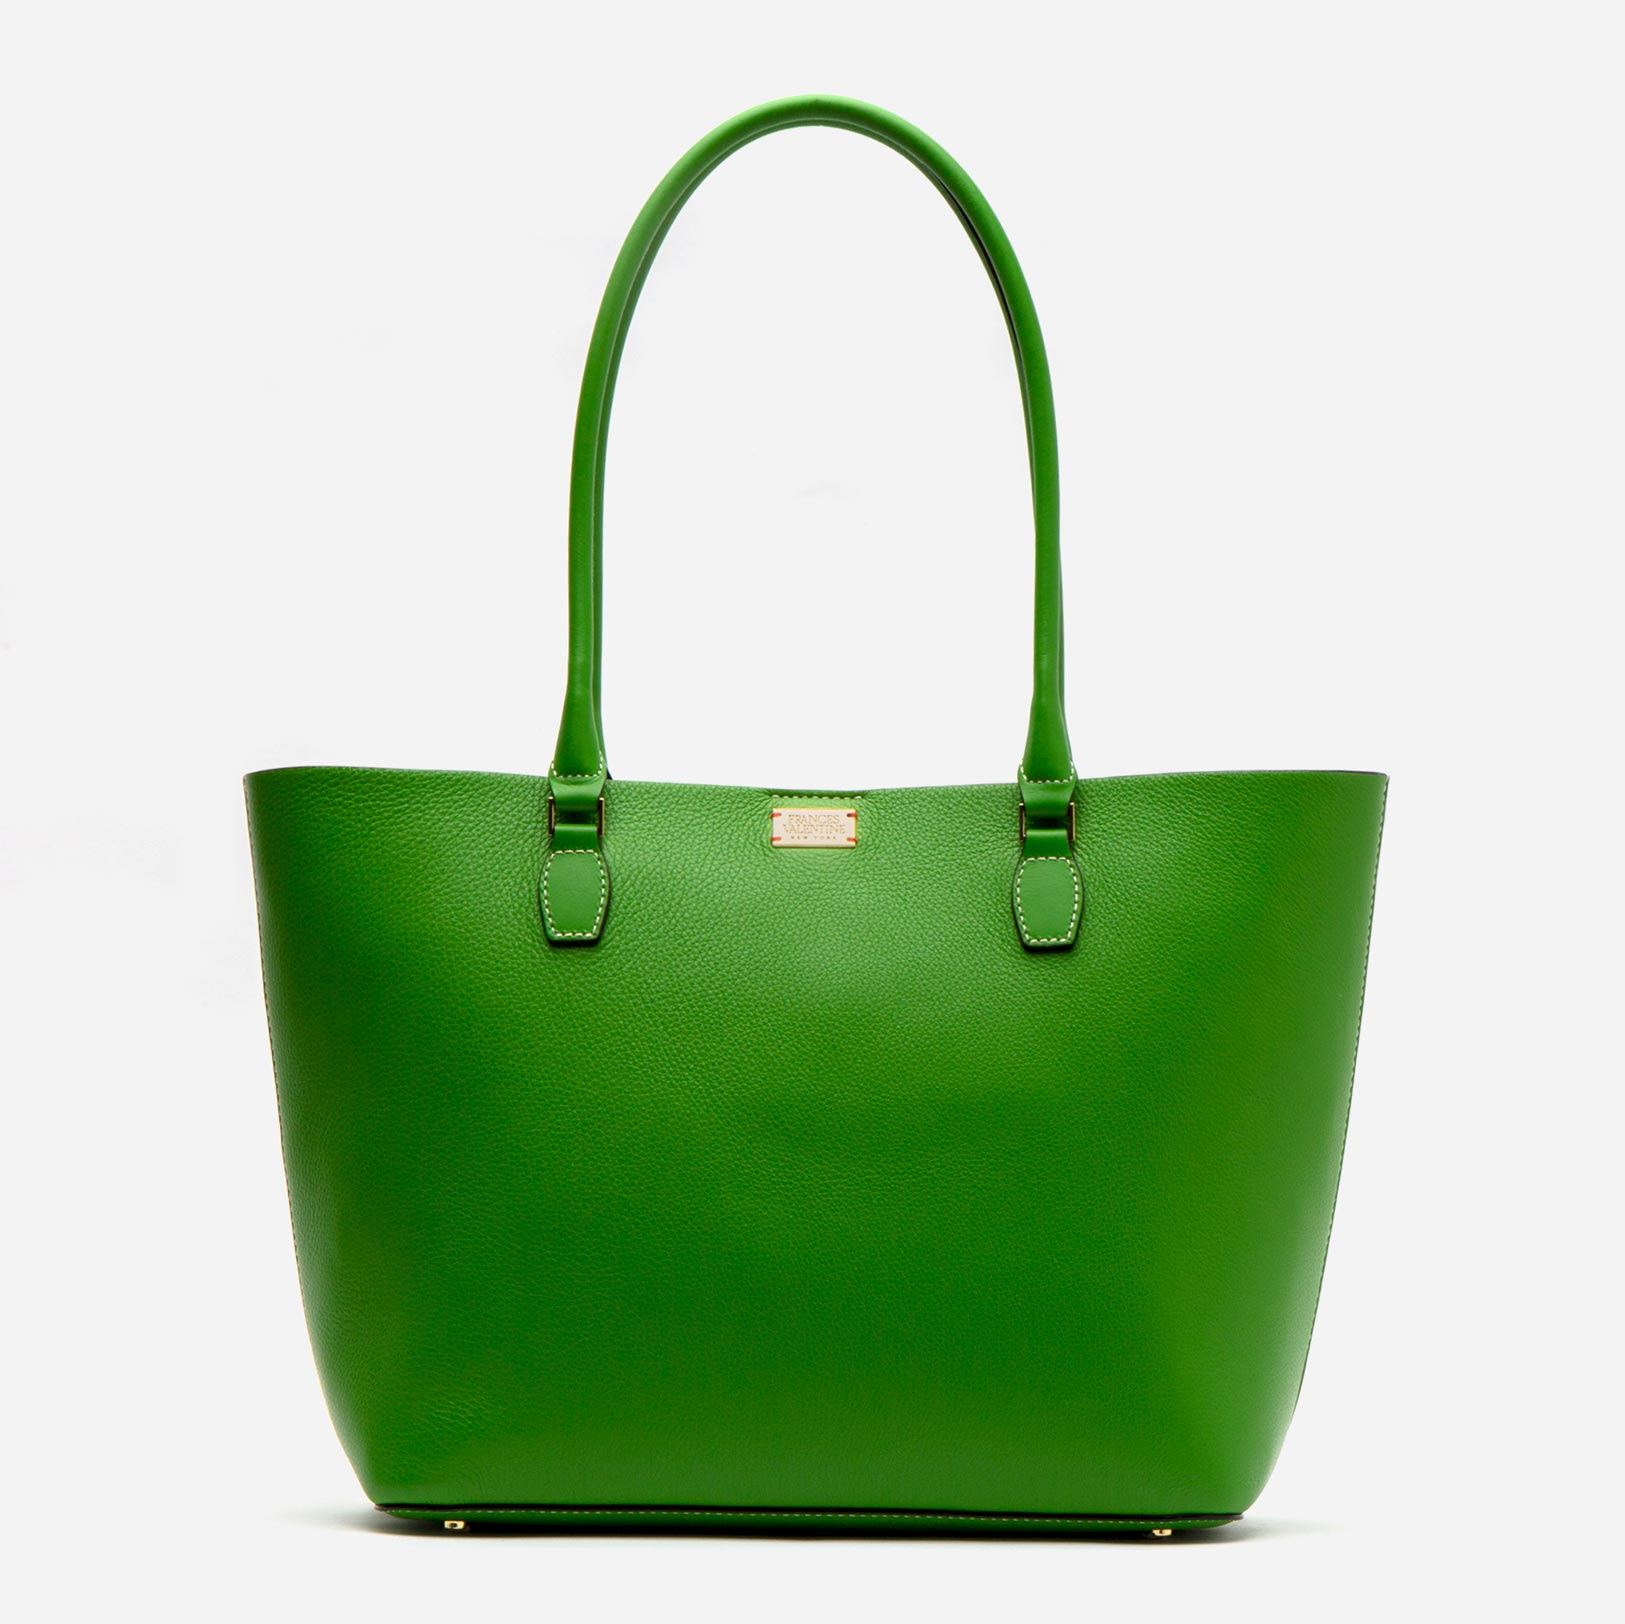 Medium Trixie Tumbled Leather Tote Green